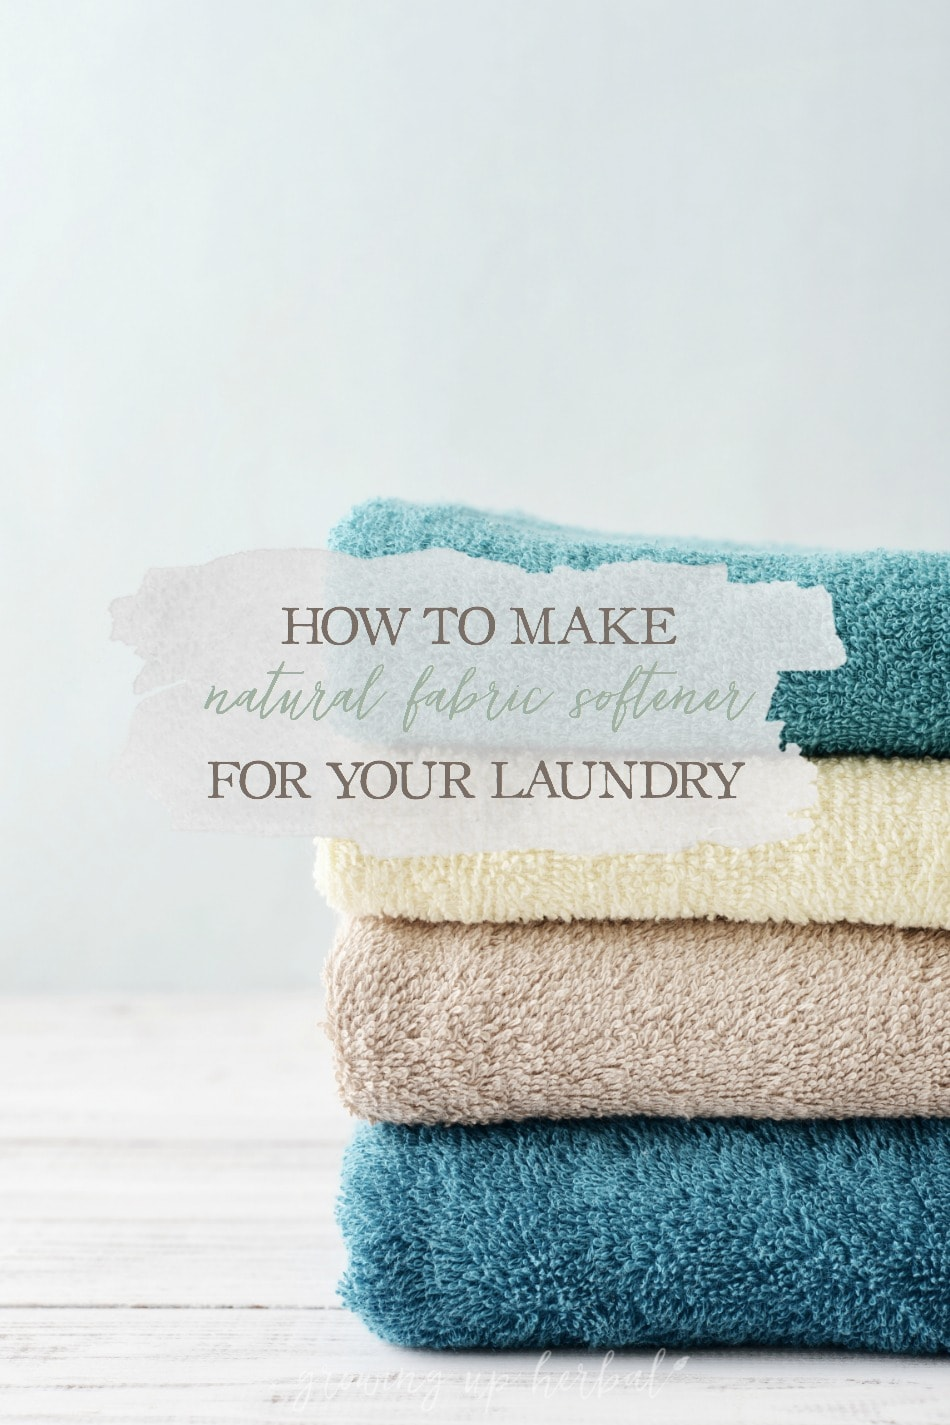 How To Make Natural Fabric Softener For Your Laundry | Growing Up Herbal | Cut out